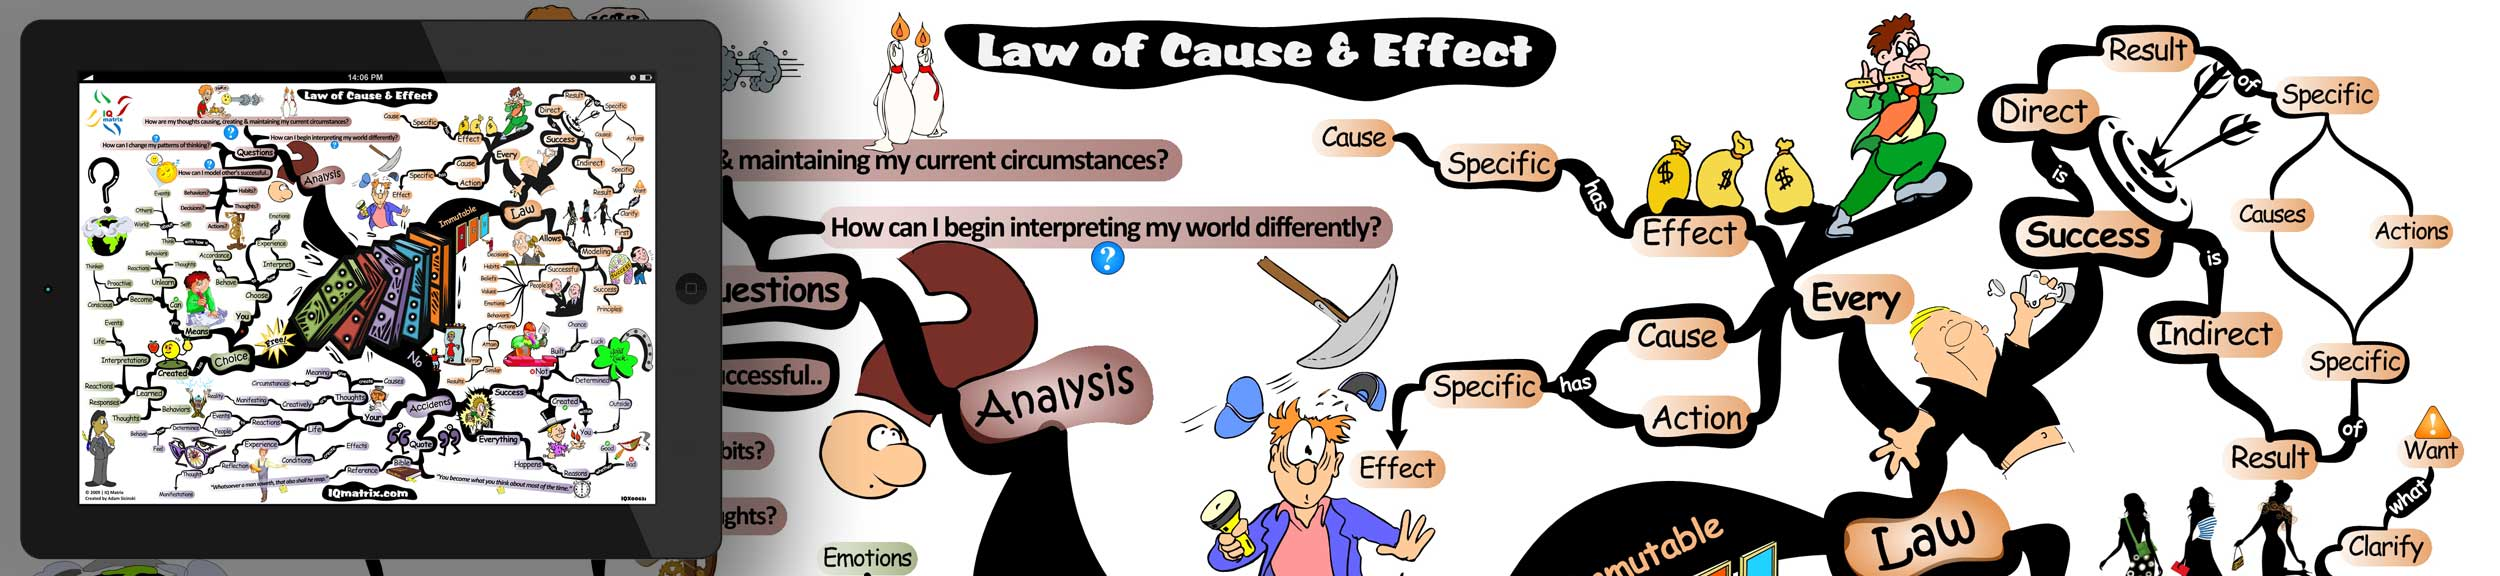 The Universal Law of Cause and Effect and its Impact on Your Life